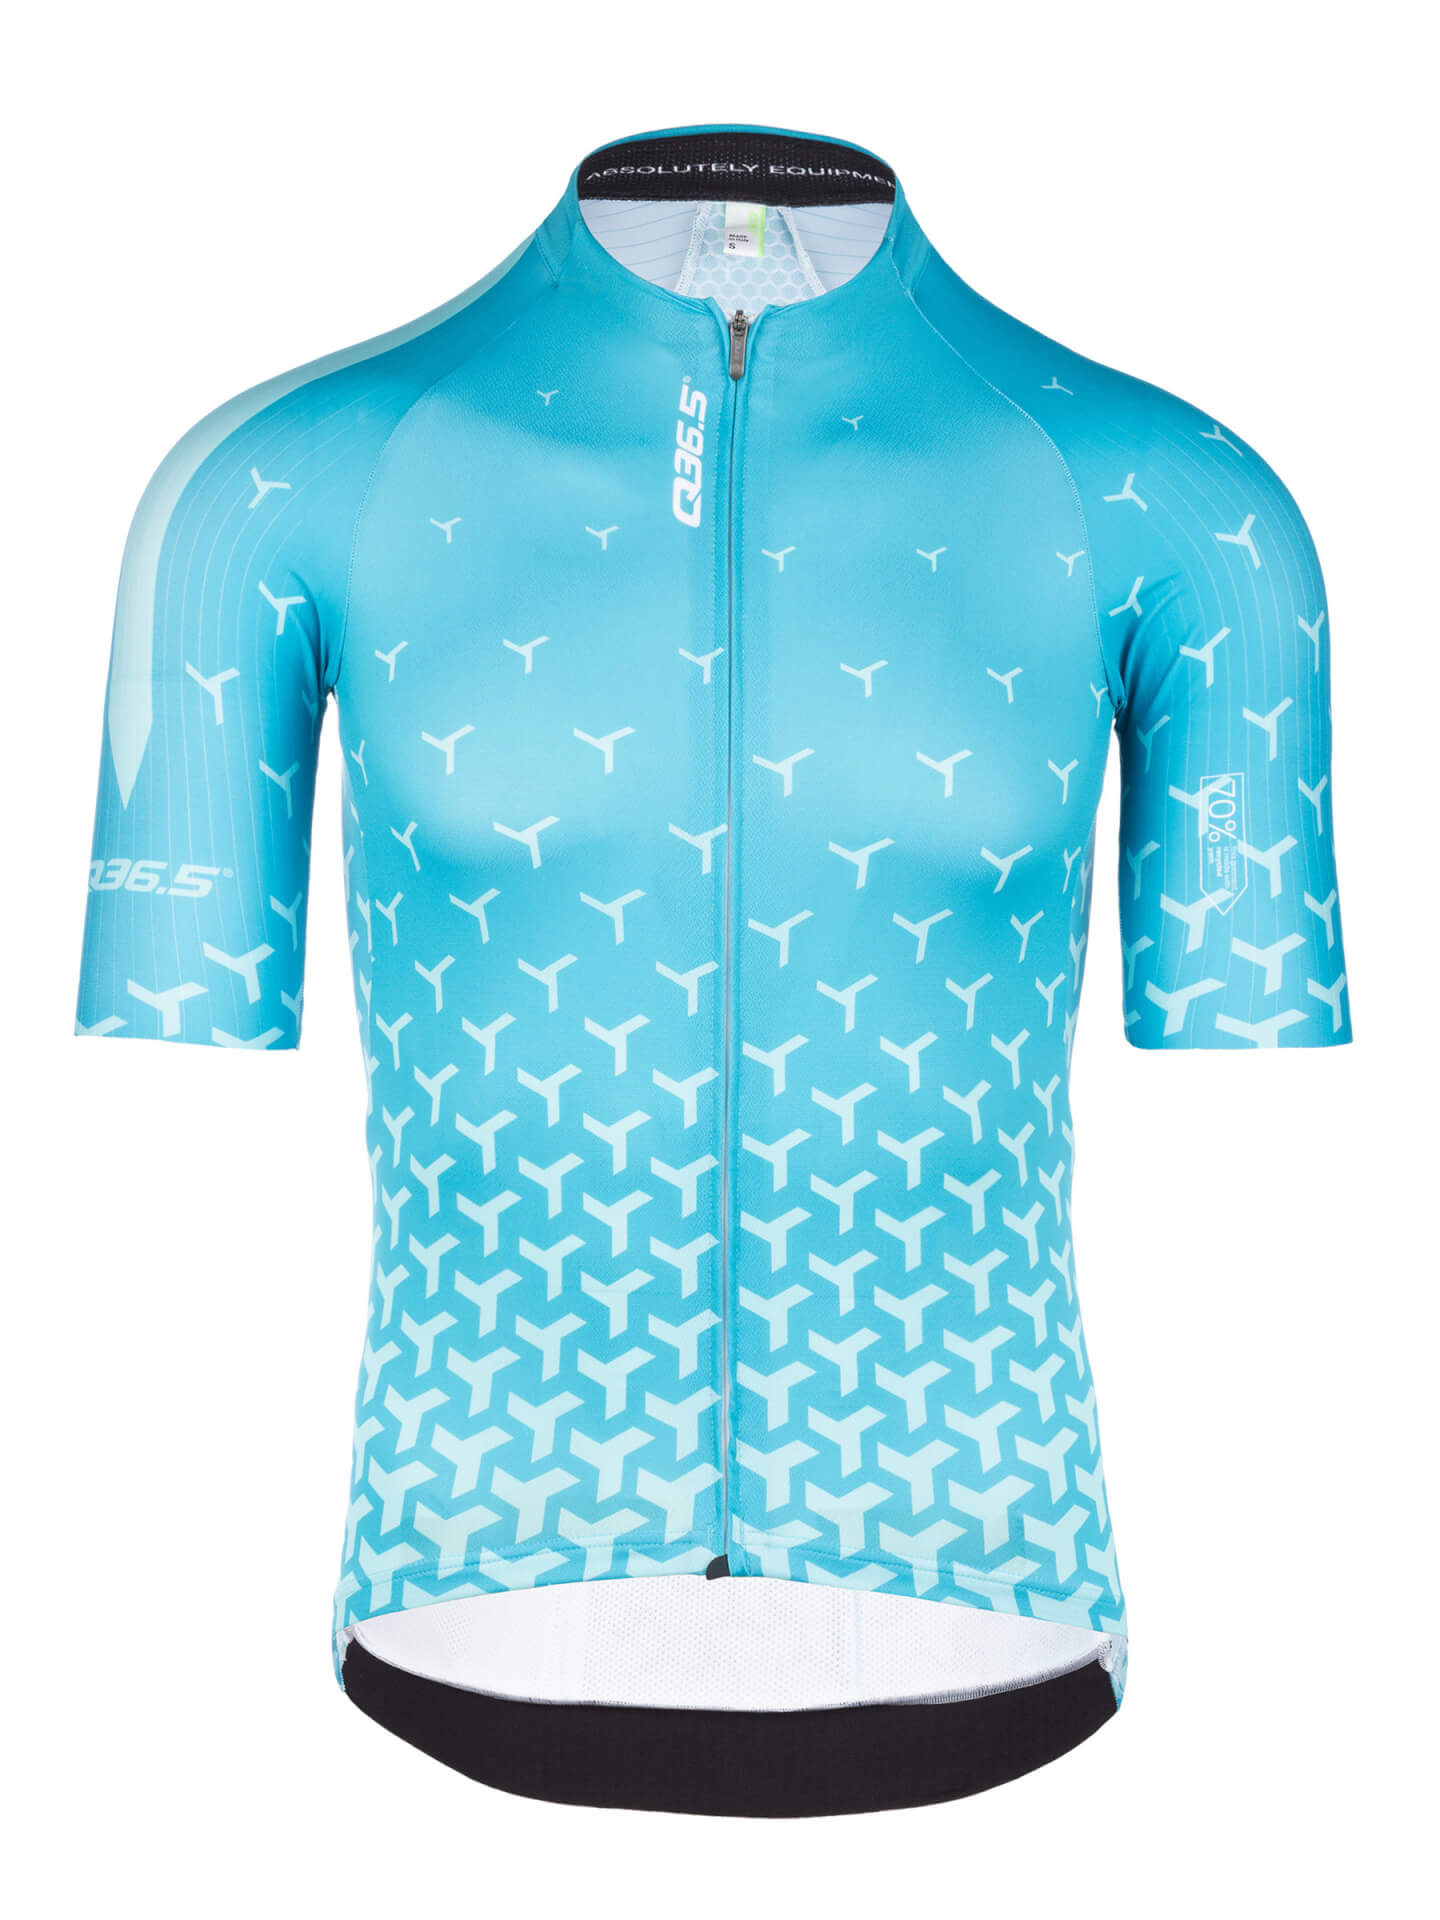 Mens cycling jersey short sleeve R2 Y turquoise Q36.5